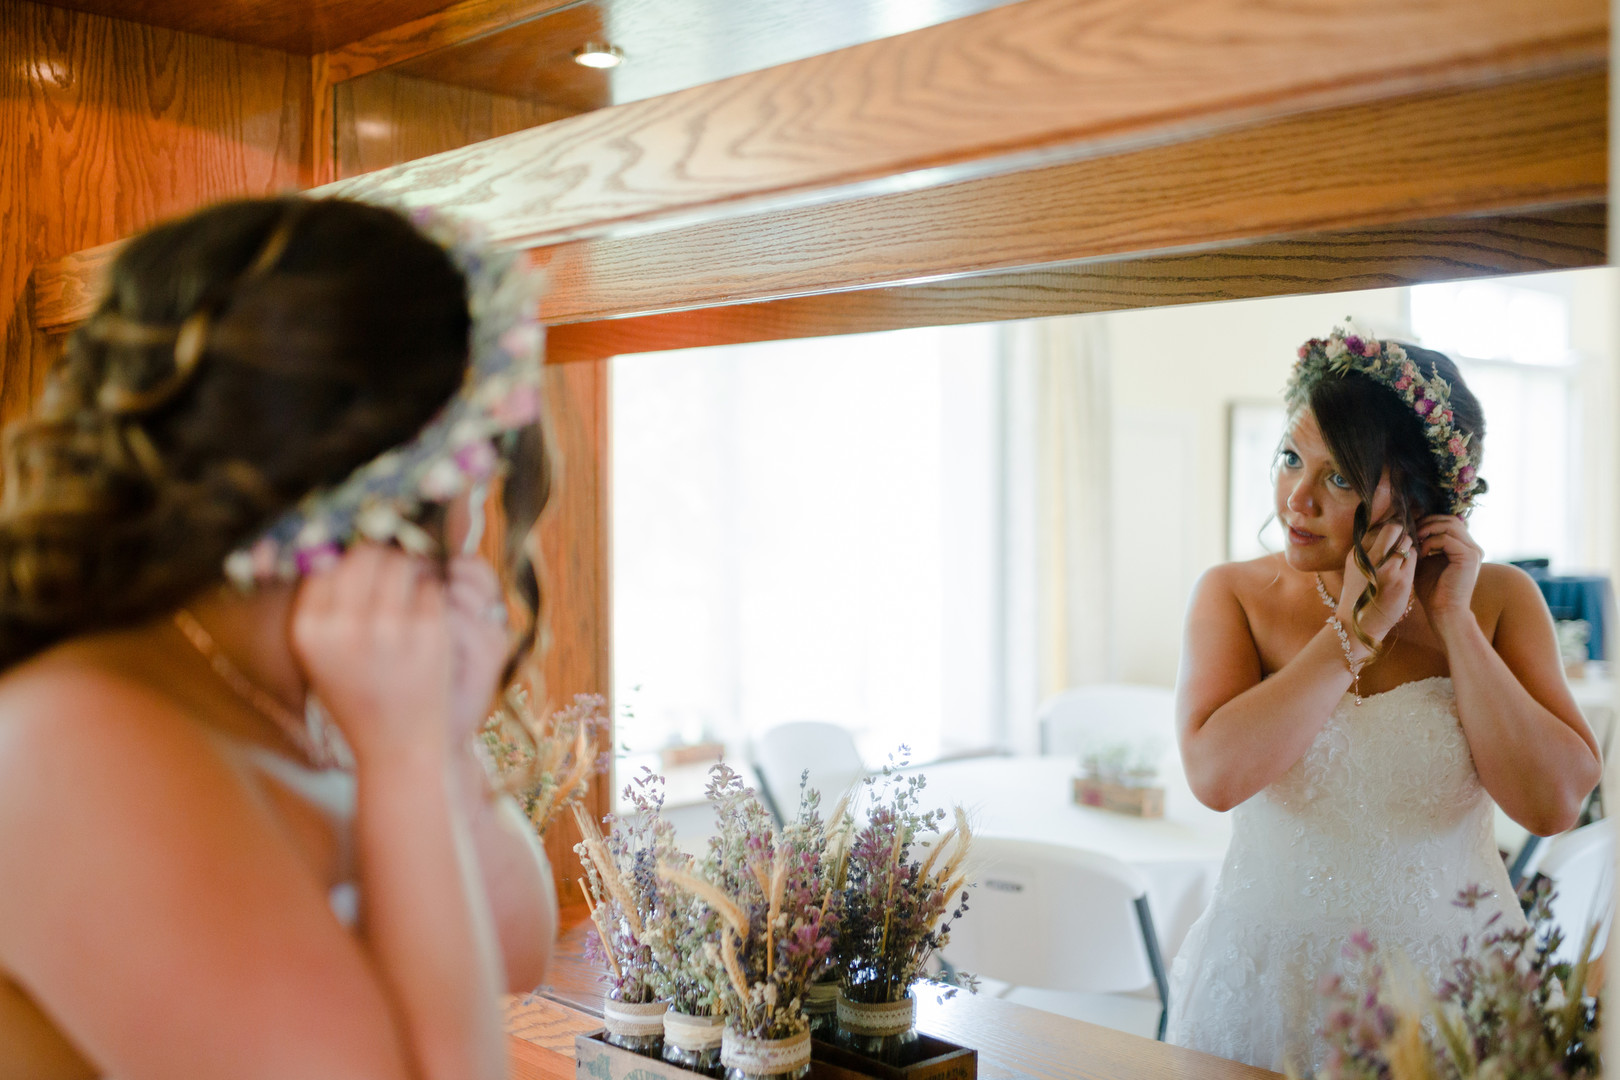 Bride putting on wedding jewelry: Rustic country wedding in Minooka, IL captured by Katie Brsan Photography. Visit CHItheeWED.com for more wedding inspiration!